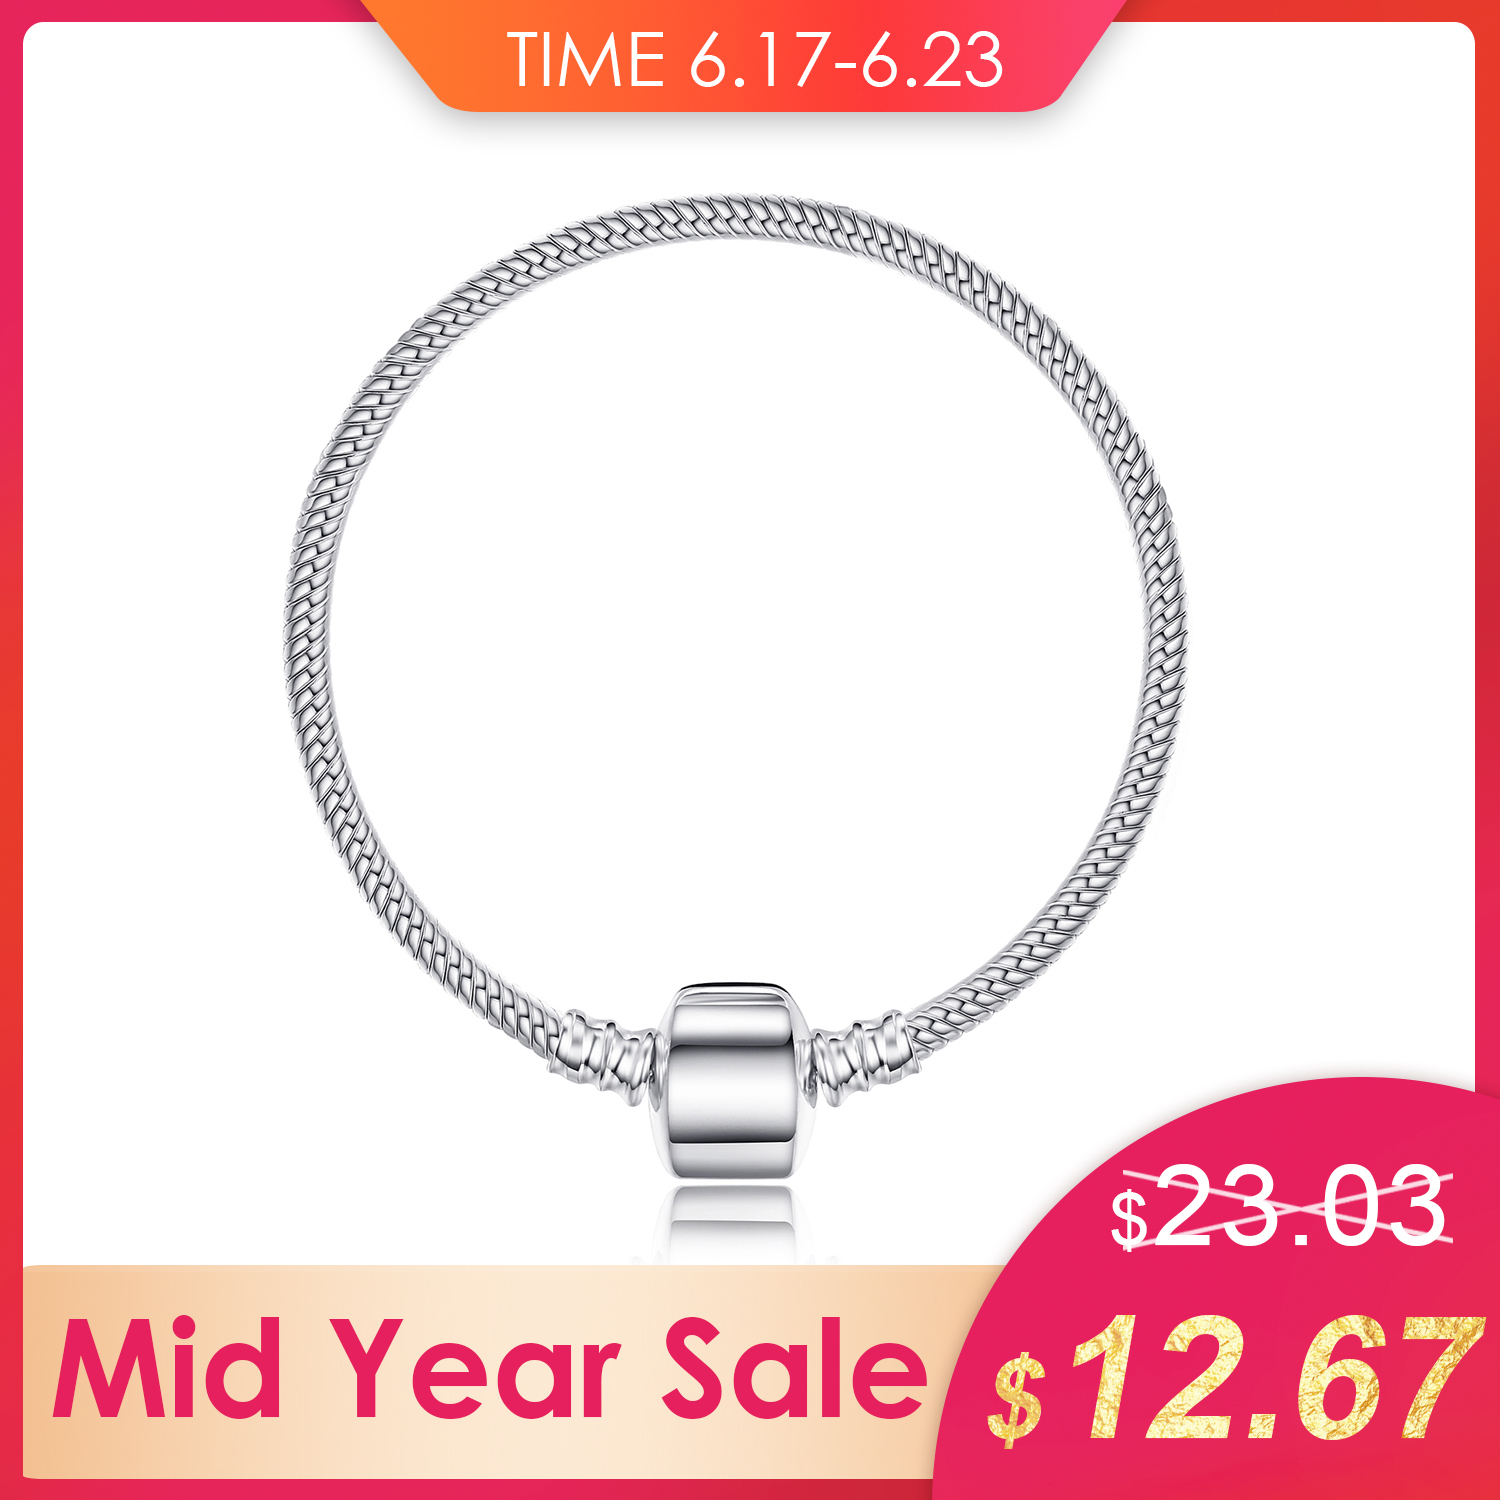 Jewelrypalace 925 Sterling Silver Silver Clasp Bangle  Jewelry  Women Anniversary Gift For Her Women girlfriend New ArrivalJewelrypalace 925 Sterling Silver Silver Clasp Bangle  Jewelry  Women Anniversary Gift For Her Women girlfriend New Arrival